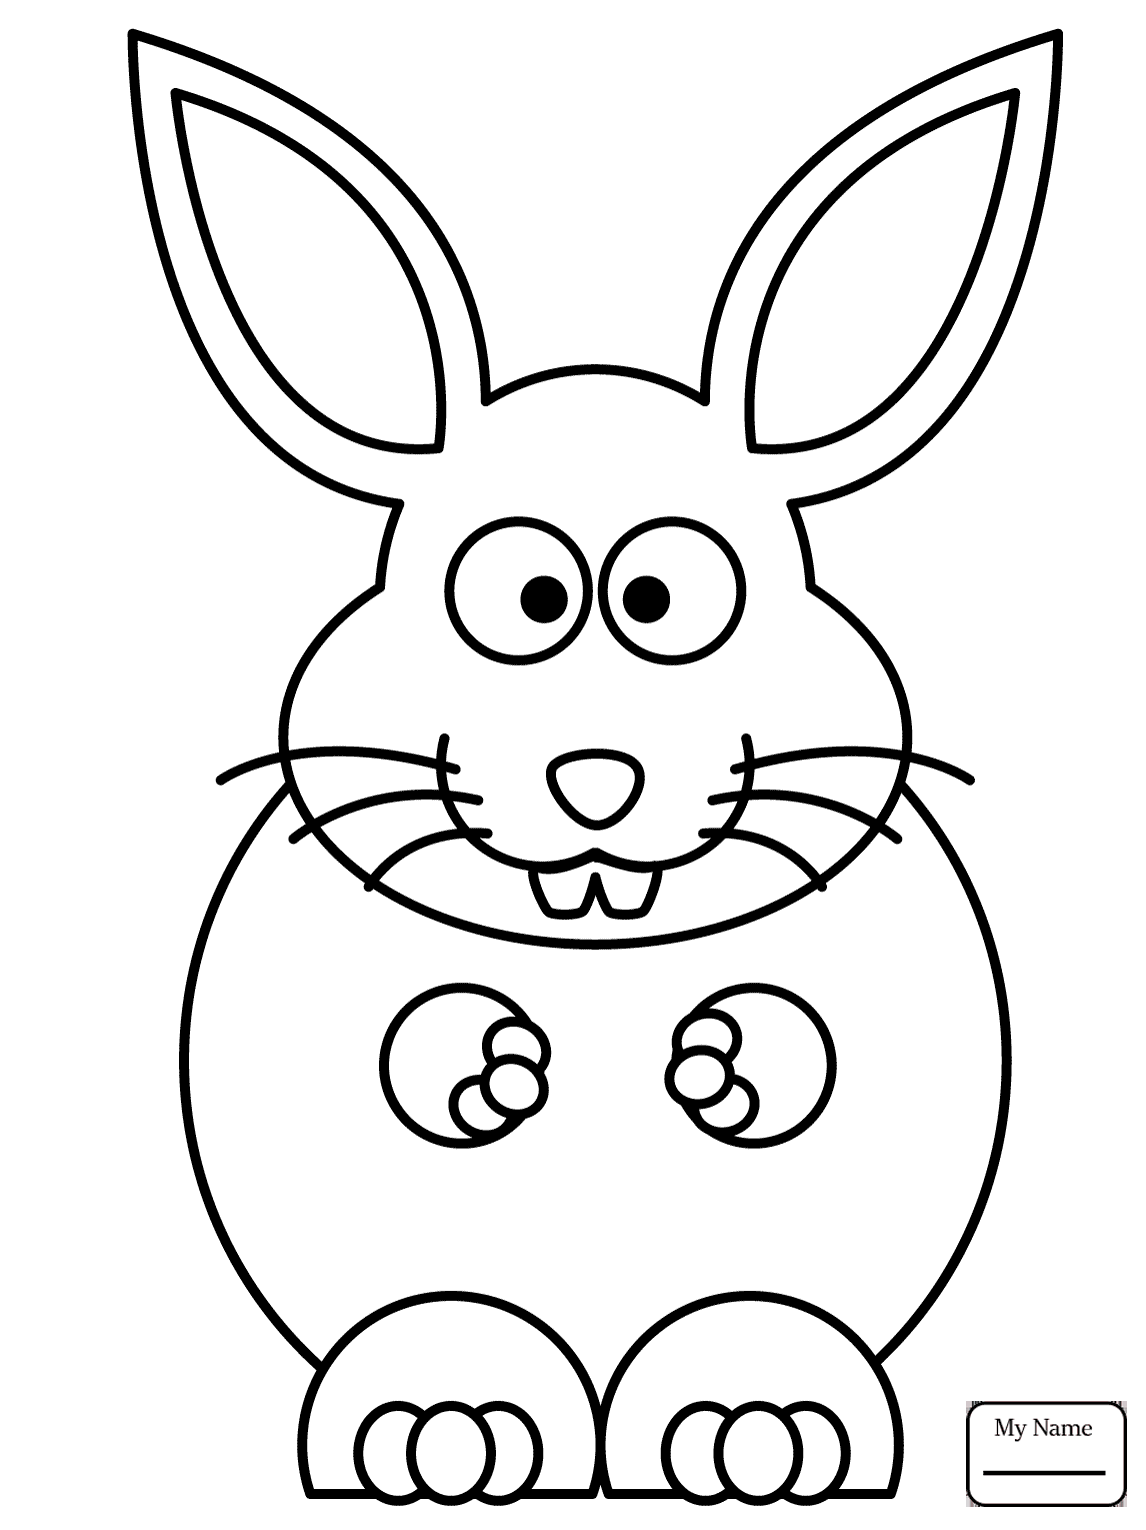 black and white rabbit drawing black and white rabbit drawing at getdrawings free download rabbit black drawing white and